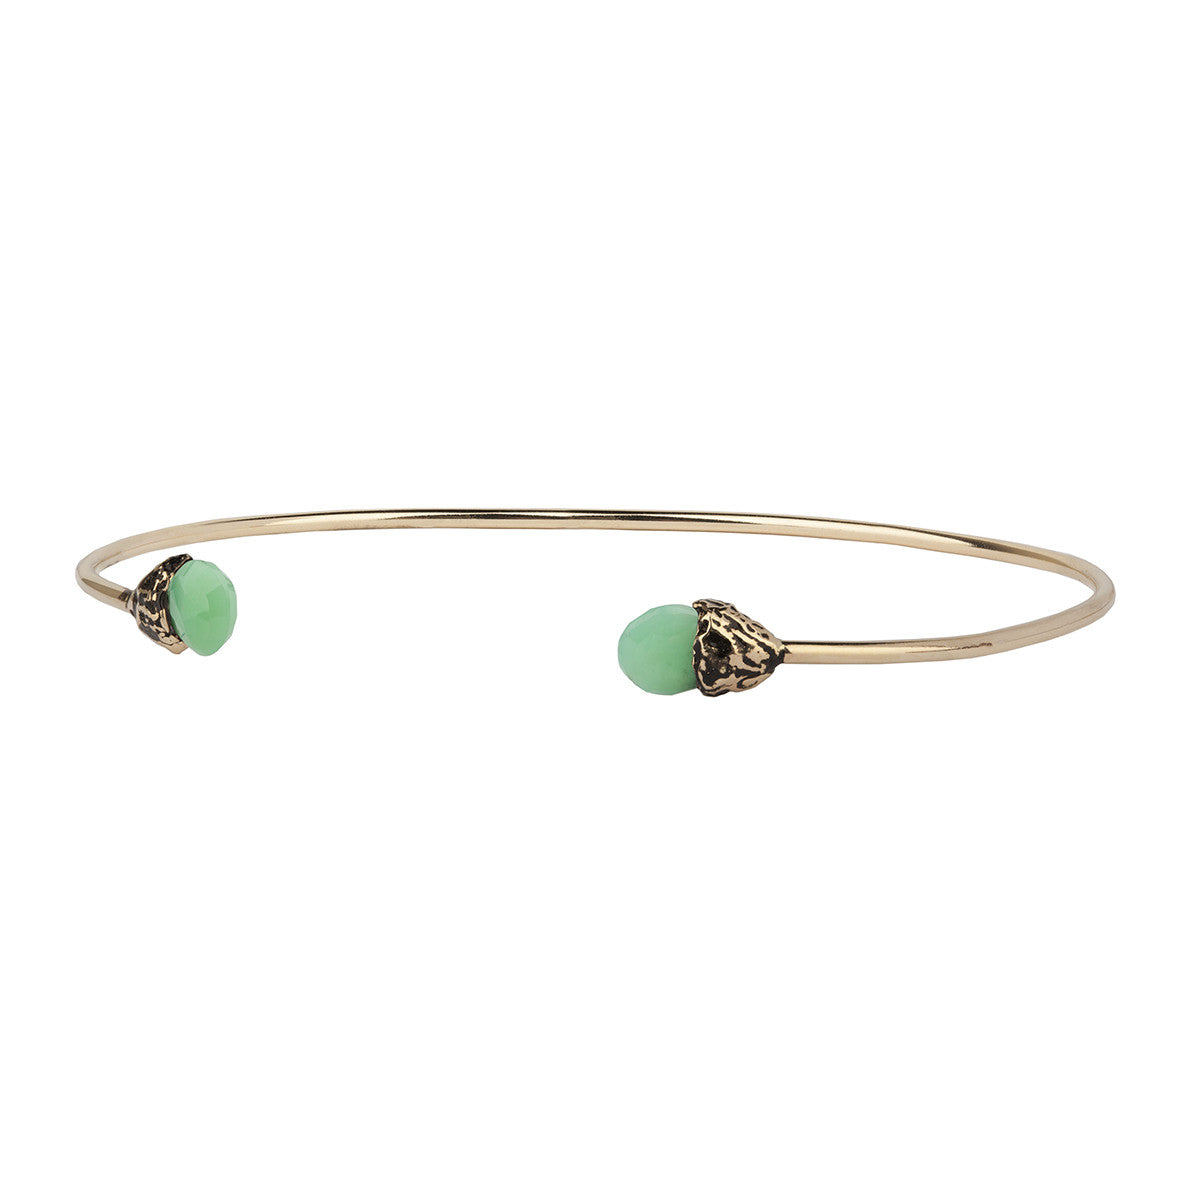 Healing 14K Gold Capped Attraction Charm Open Bangle